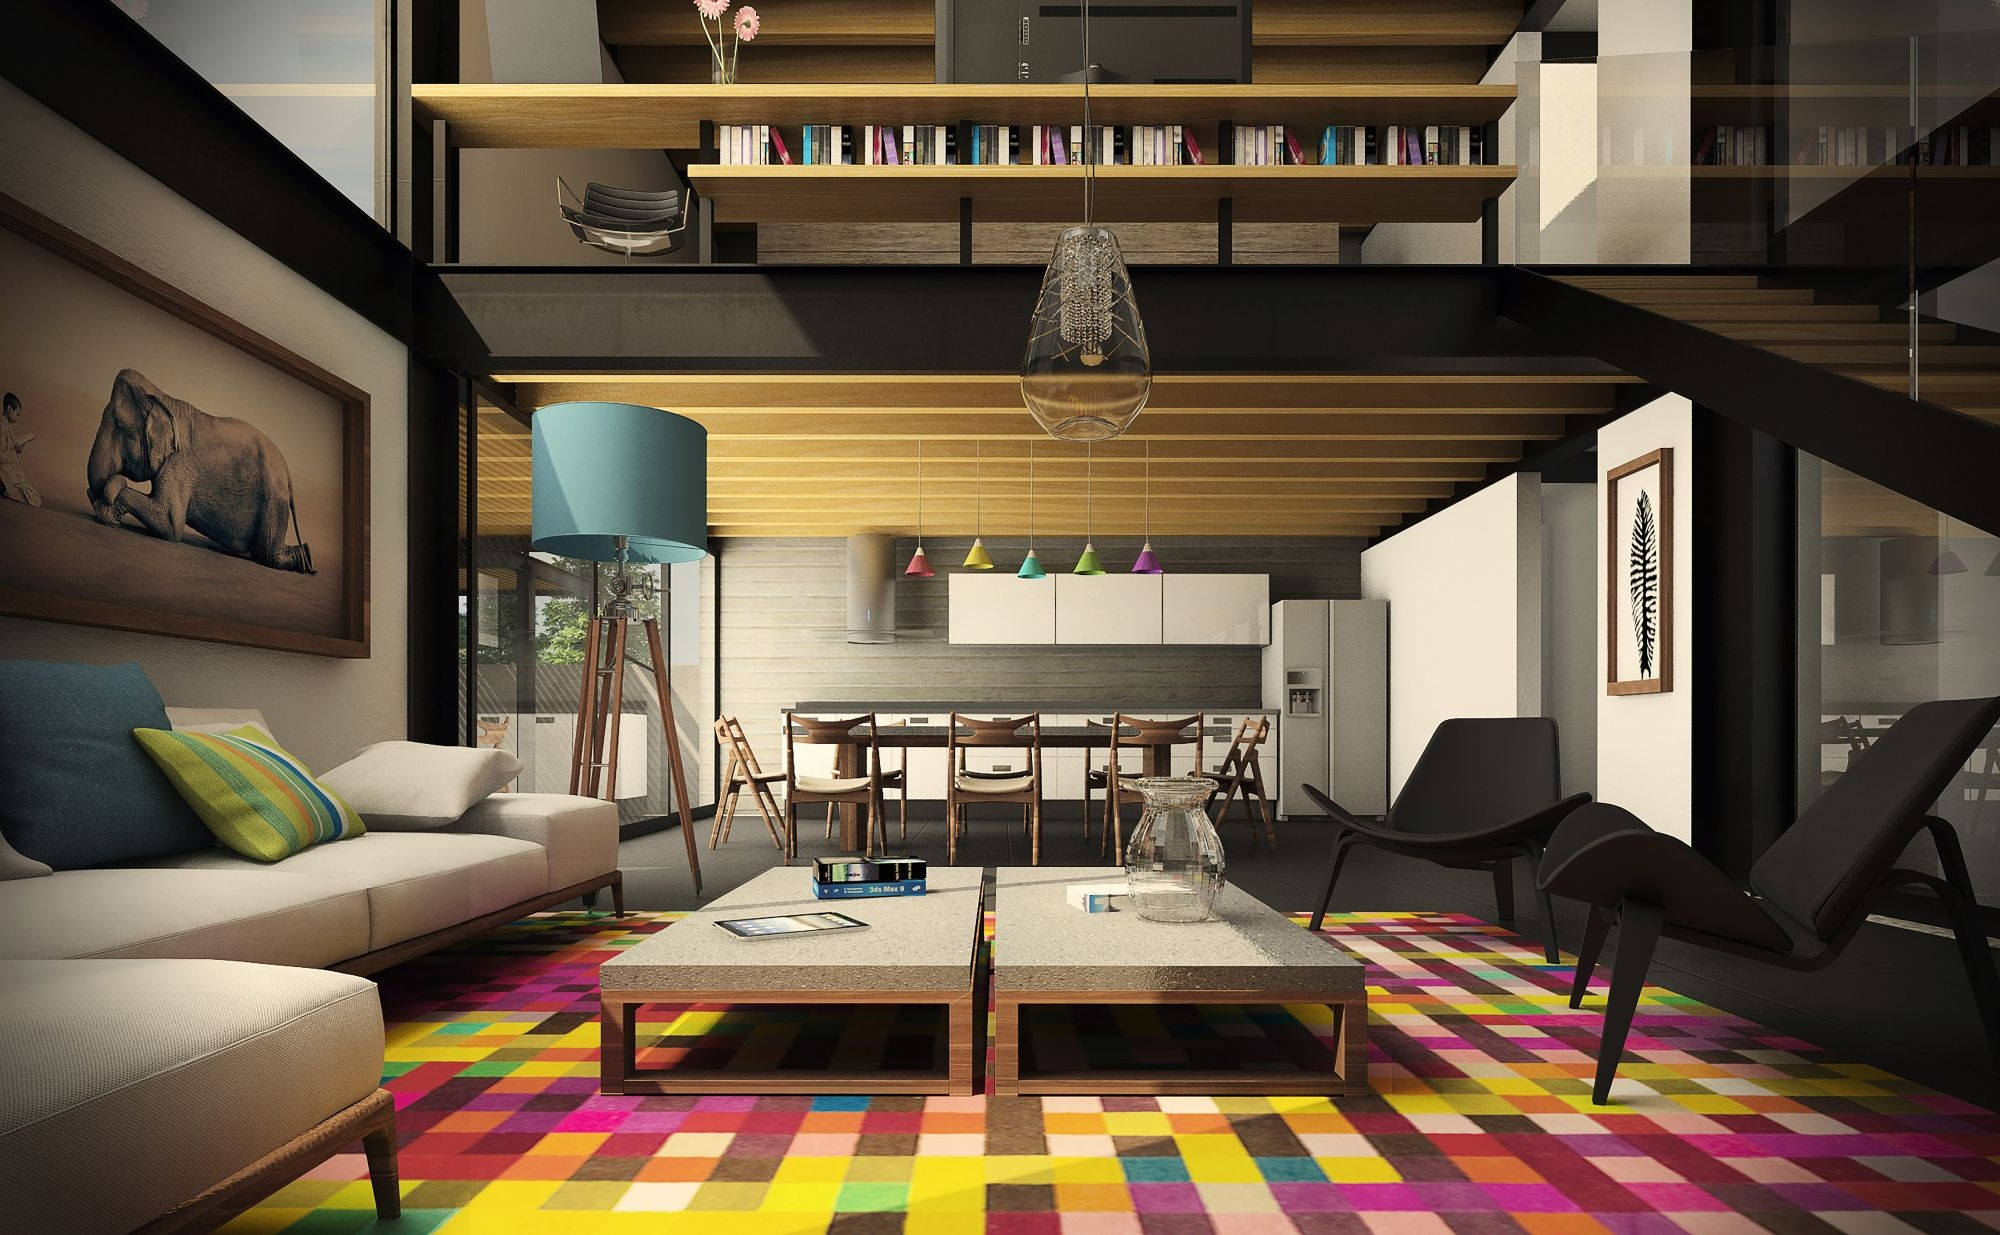 Gorgeous Like Architecture Interior Follow Ly Urban Living Rooms Living Room Interior Design Photos Showcases Living Room Sofa Design Photos living room Livingroom Design Photos